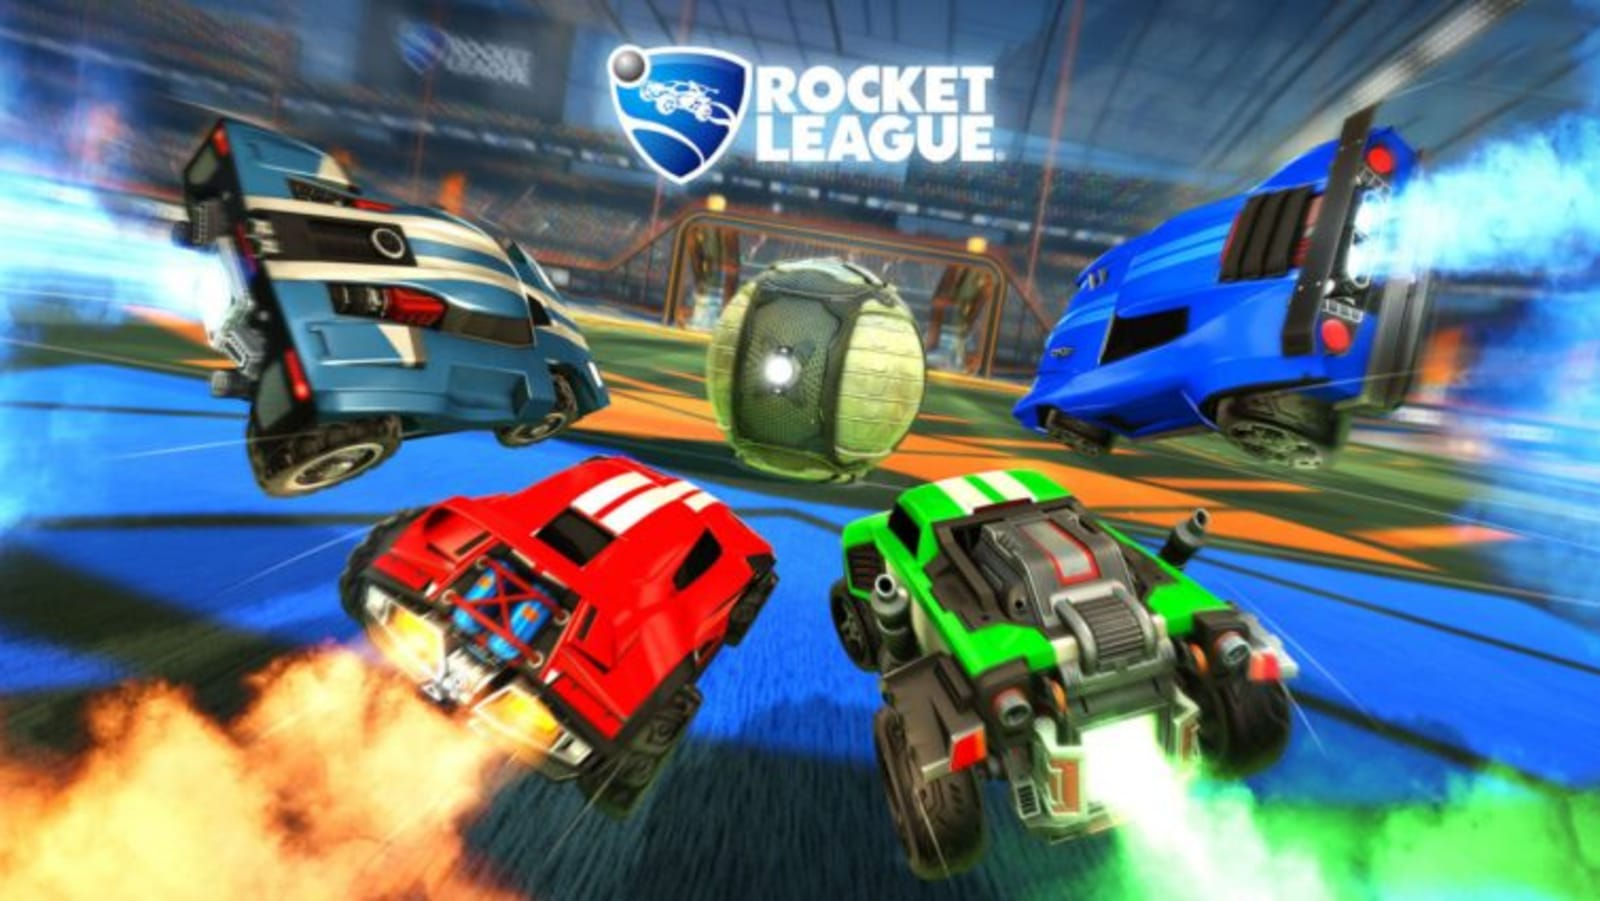 Rocket League' supports cross-play on every console, even PS4